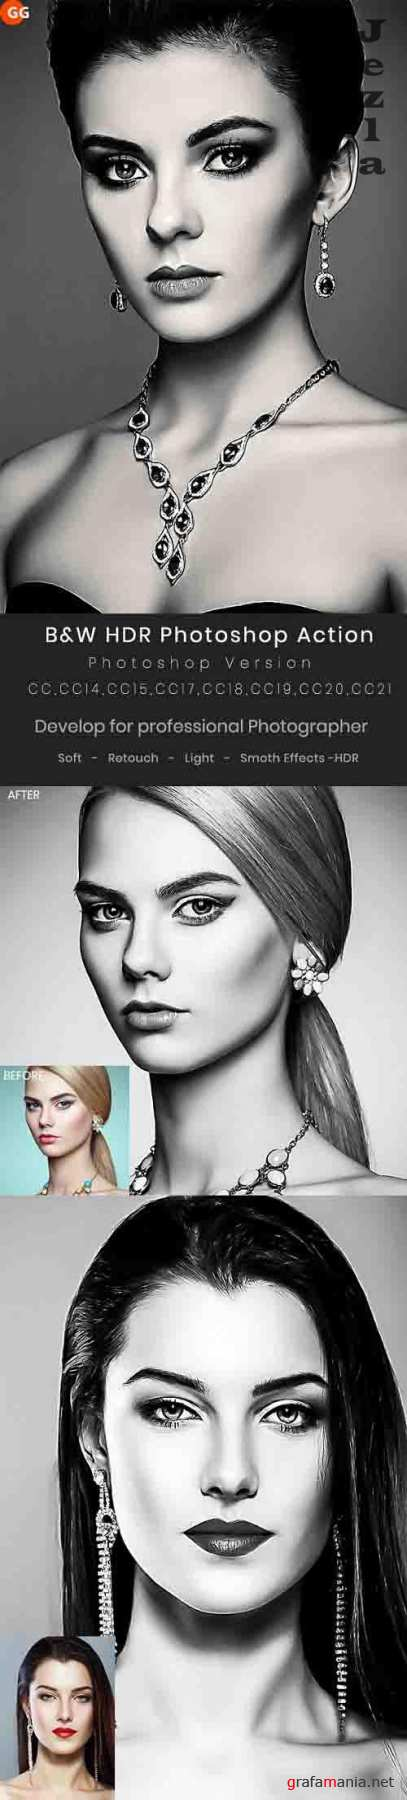 GraphicRiver - B&W HDR Photoshop Action 29947060